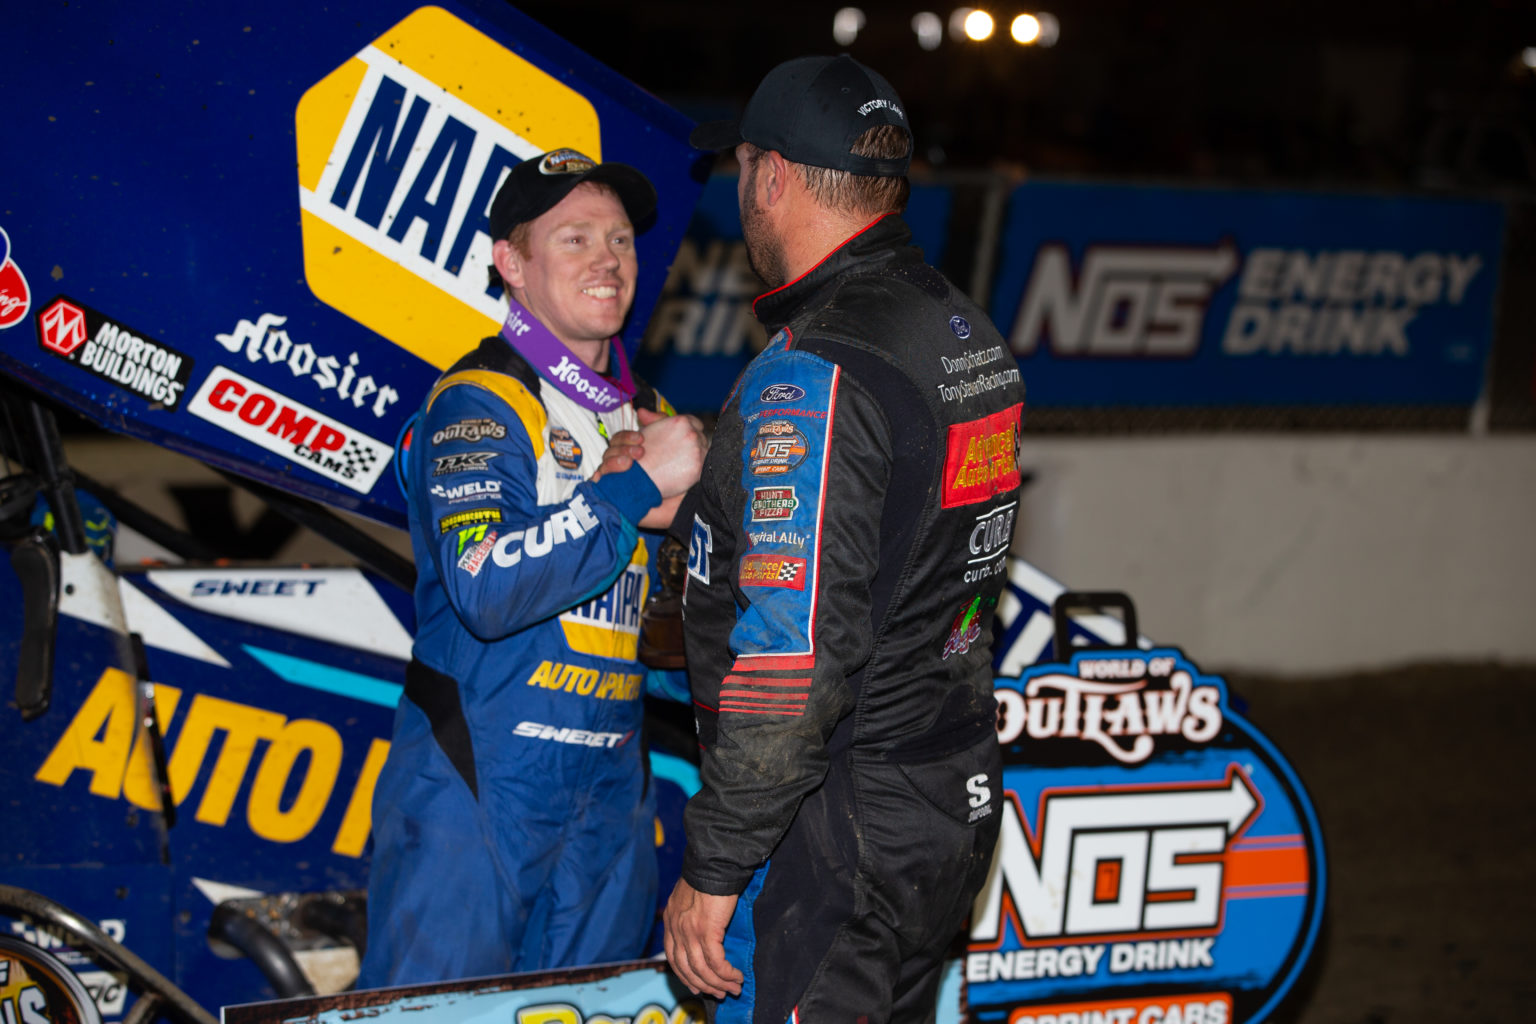 World of outlaws DIRTcar Nationals